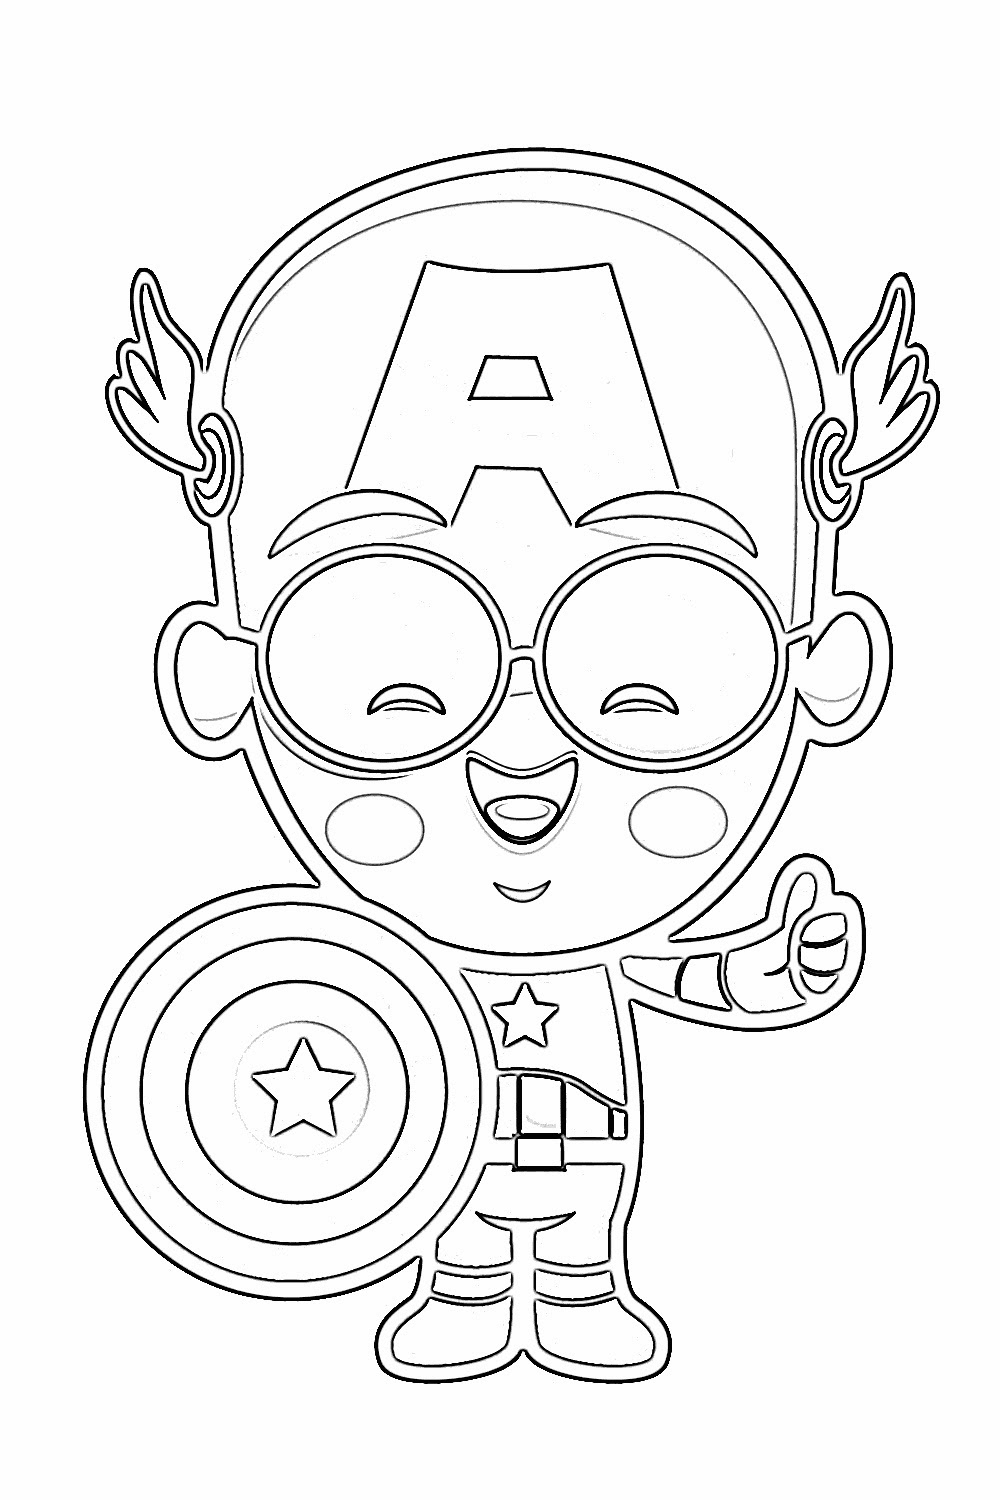 avengers coloring sheet craftoholic ultimate avengers coloring pages avengers sheet coloring